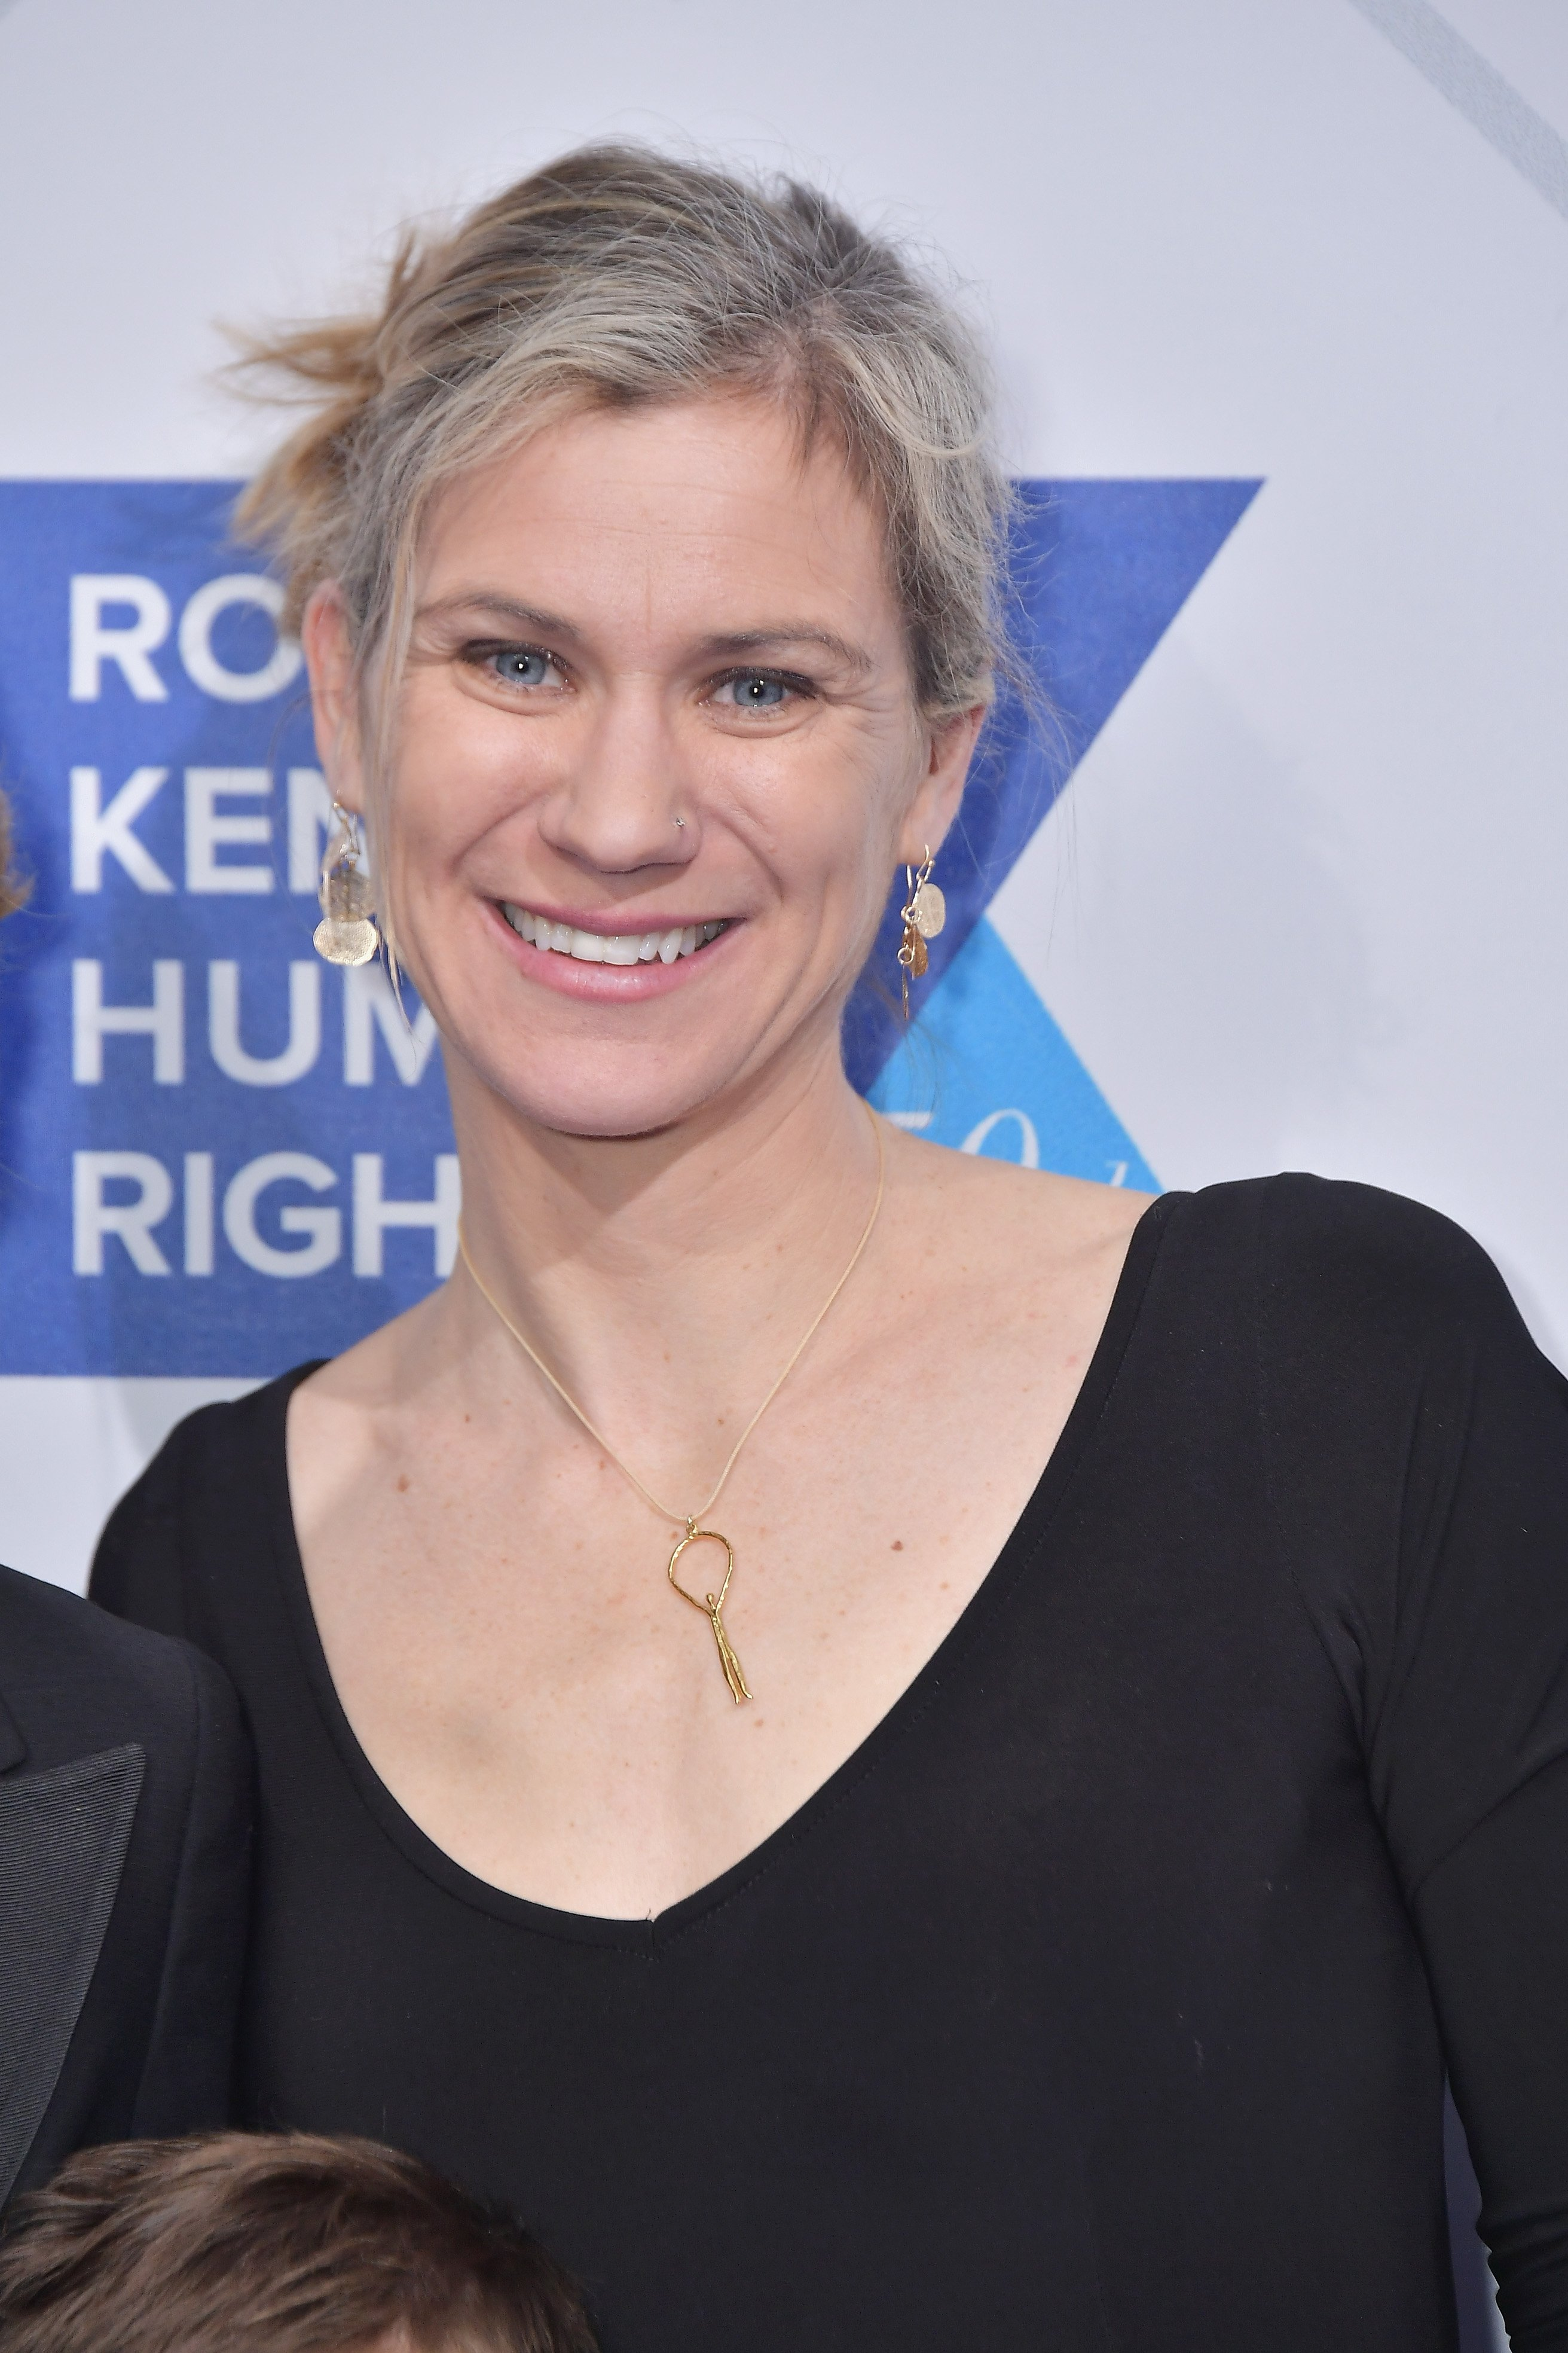 Maeve McKean attends the 2019 Robert F. Kennedy Human Rights Ripple Of Hope Awards on December 12, 2018, in New York City. | Source: Getty Images.